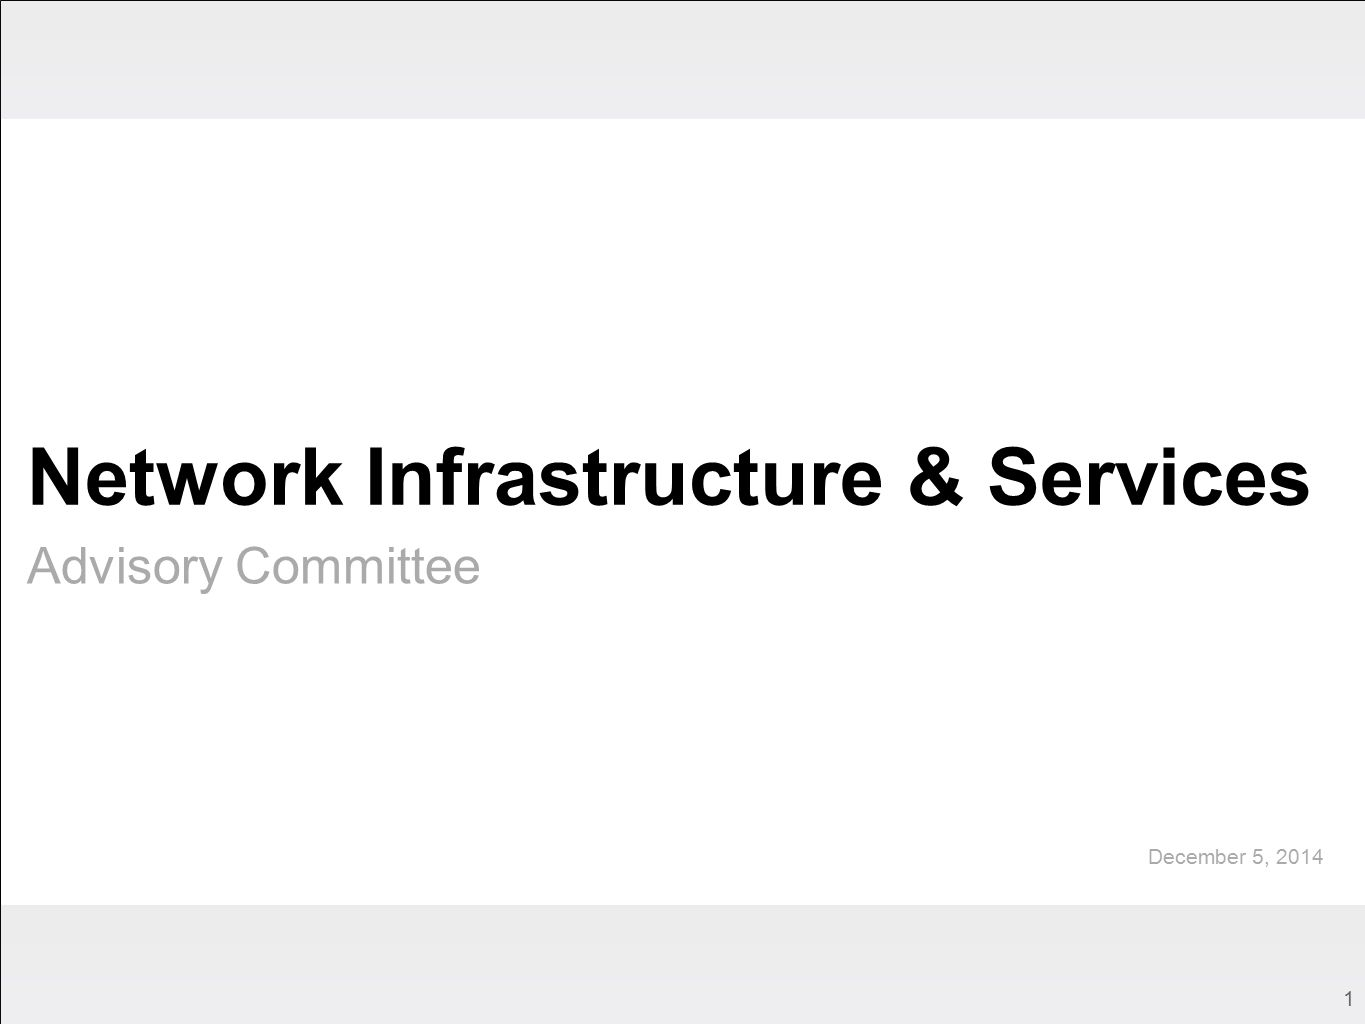 1 Network Infrastructure & Services Advisory Committee December 5, 2014